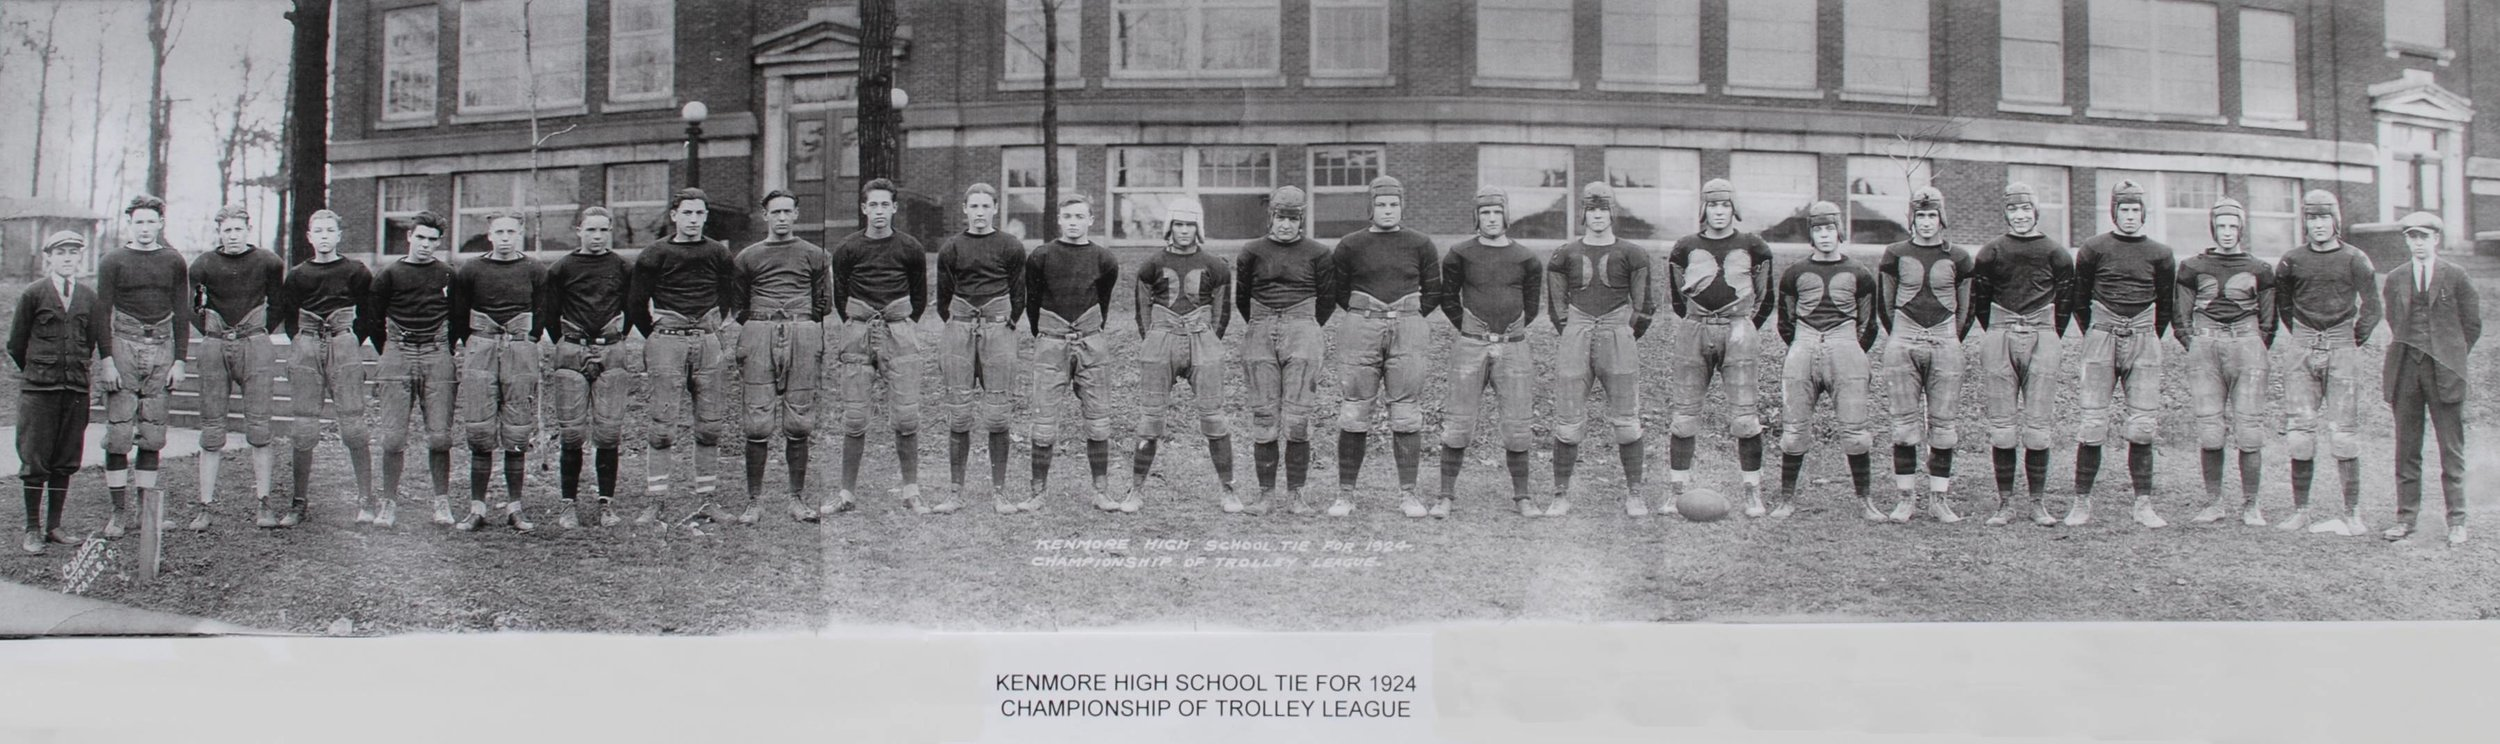 1924 KHS TIE FOR TROLLEY LEAGUE  CHAMPS.jpg